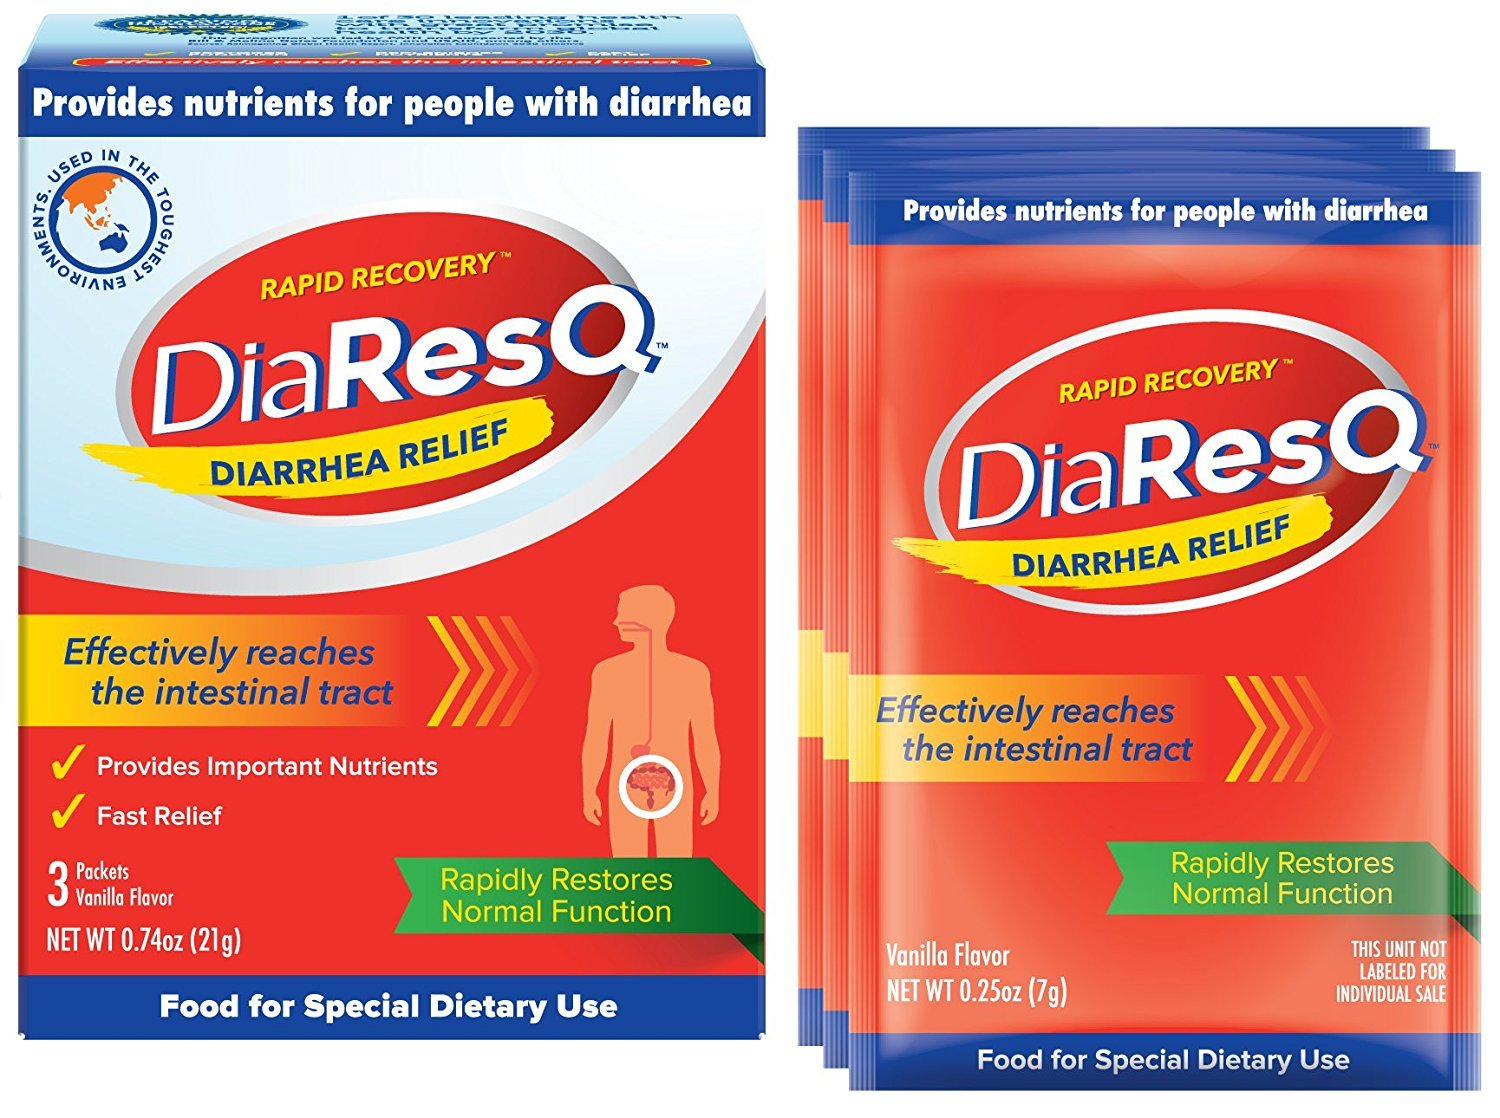 DiaResQ Rapid Recovery Diarrhea Relief - 3 Packets, Pack of 2